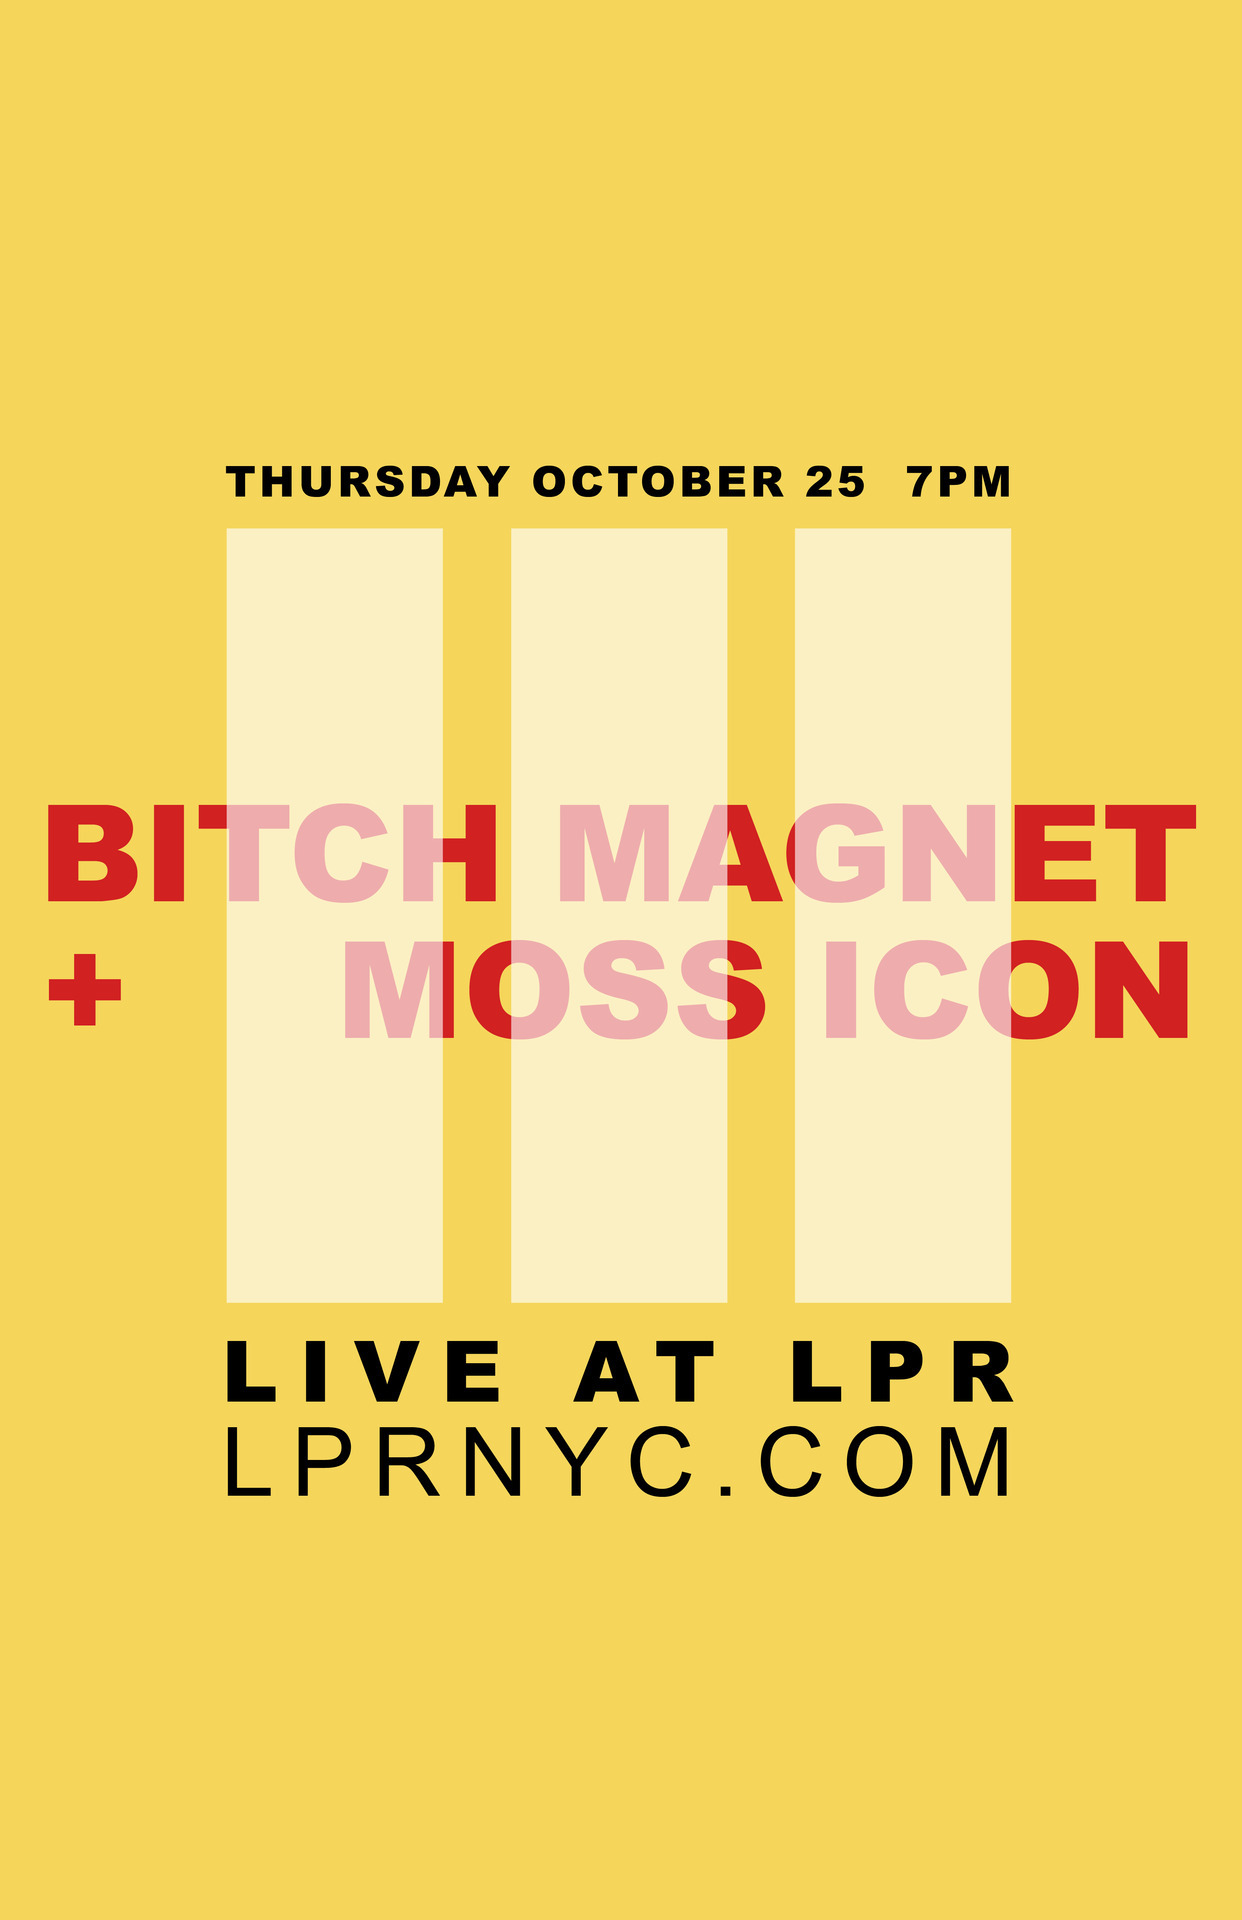 Thursday night we've got Bitch Magnet and Moss Icon hit LPR. We're pumped. Here's the beautiful poster designed by Zan Emerson for this one. You can get the tickets for the show here.